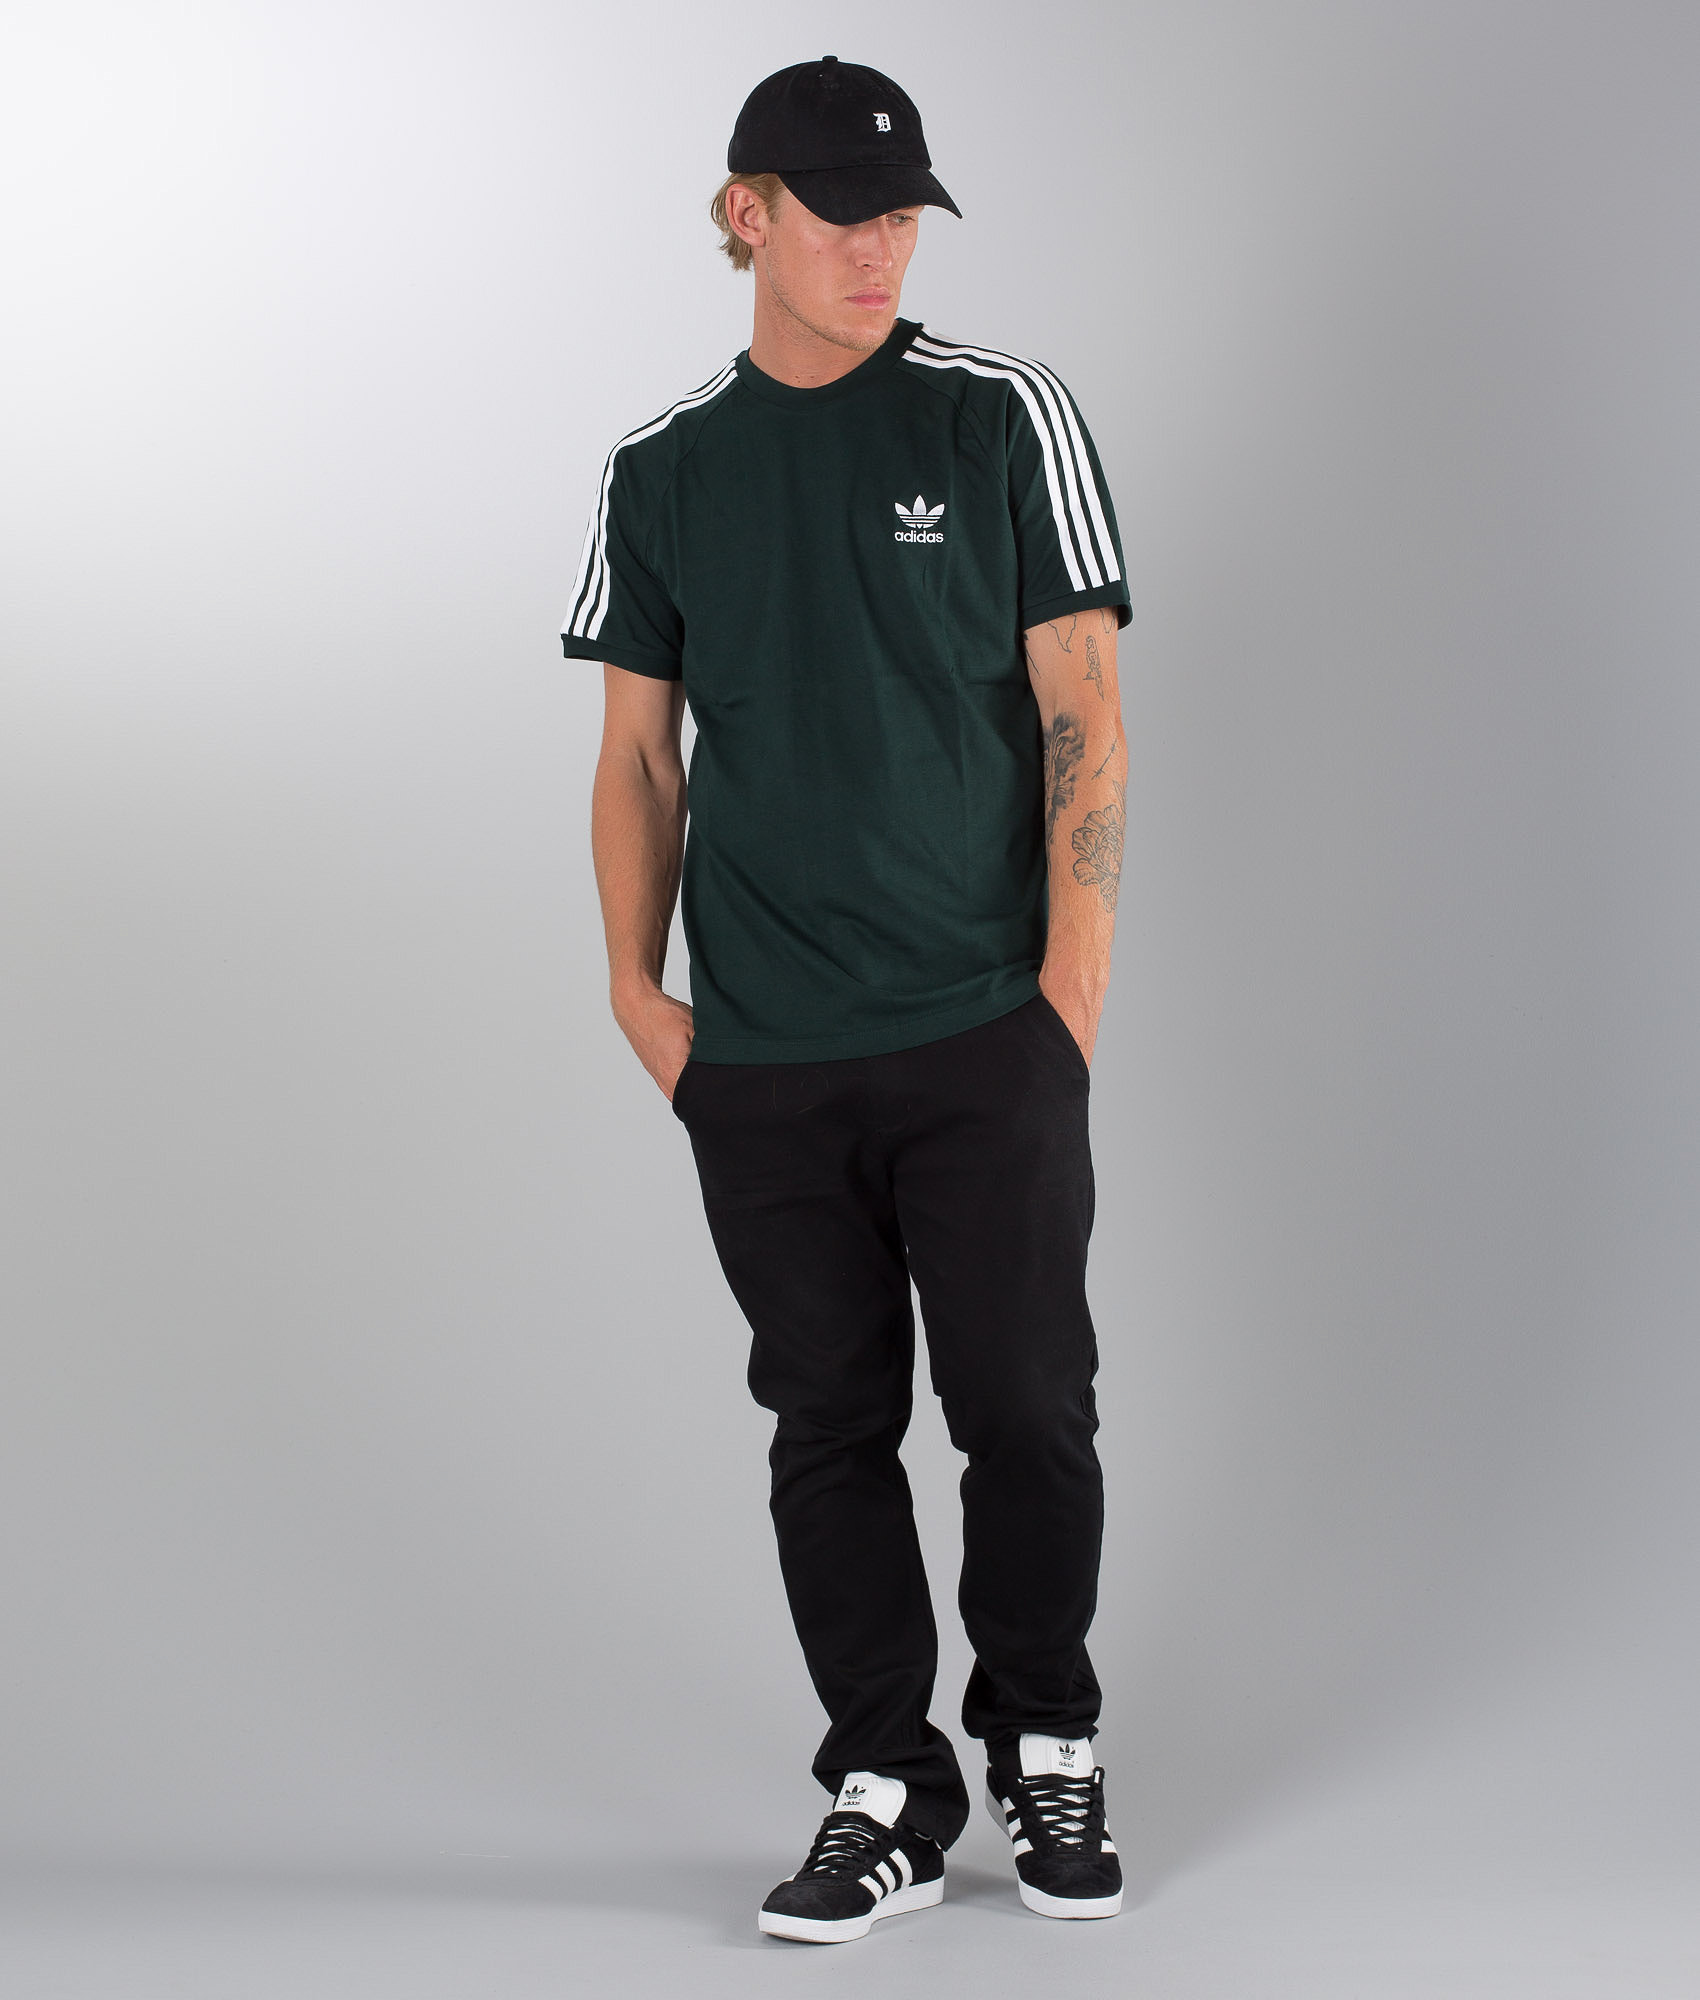 Adidas Originals 3-Stripes T-shirt Green Night - Ridestore.com bfcb46e638